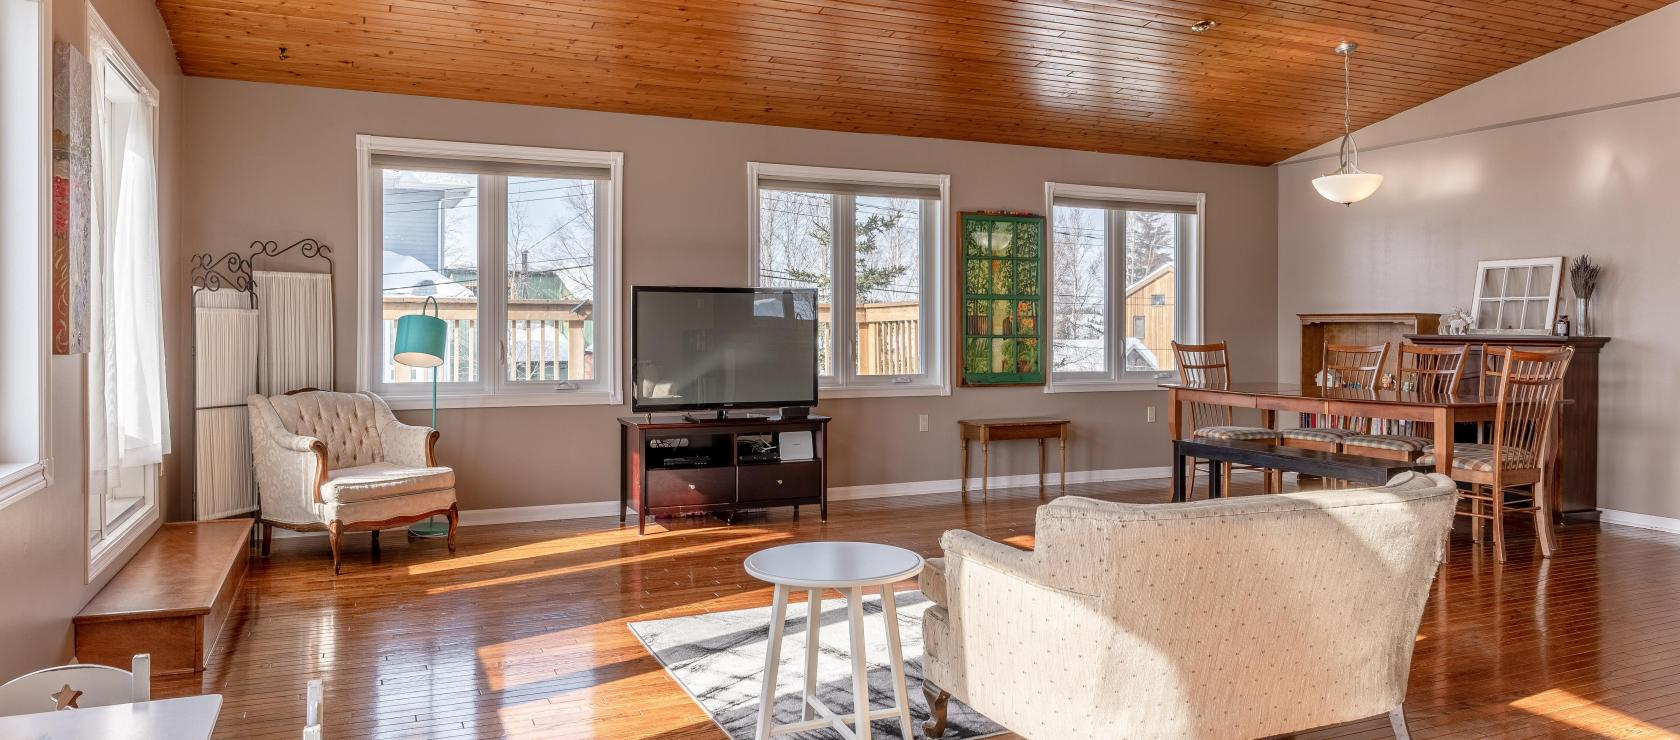 8 Lessard Drive, Old Town, Yellowknife 2